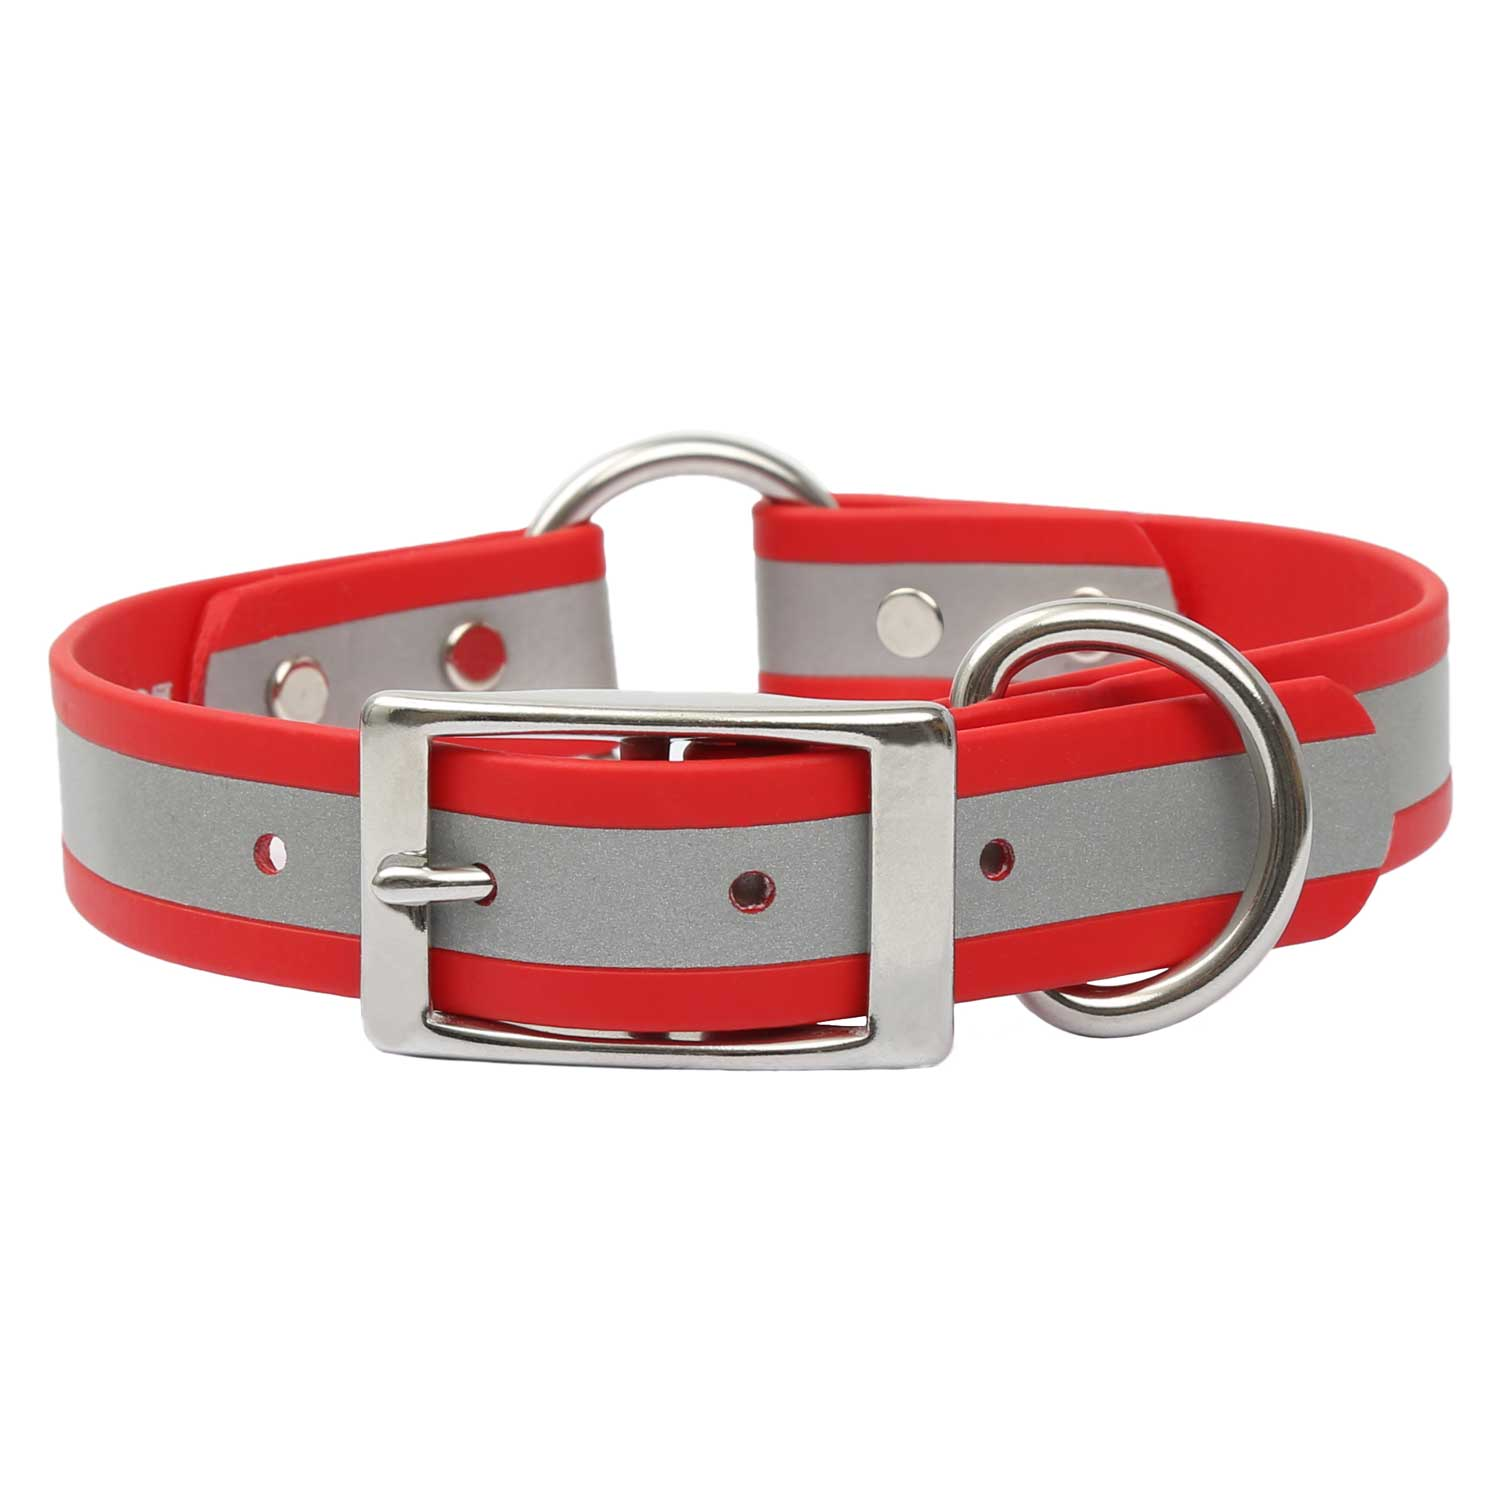 Reflective Waterproof Safety Collar - Red